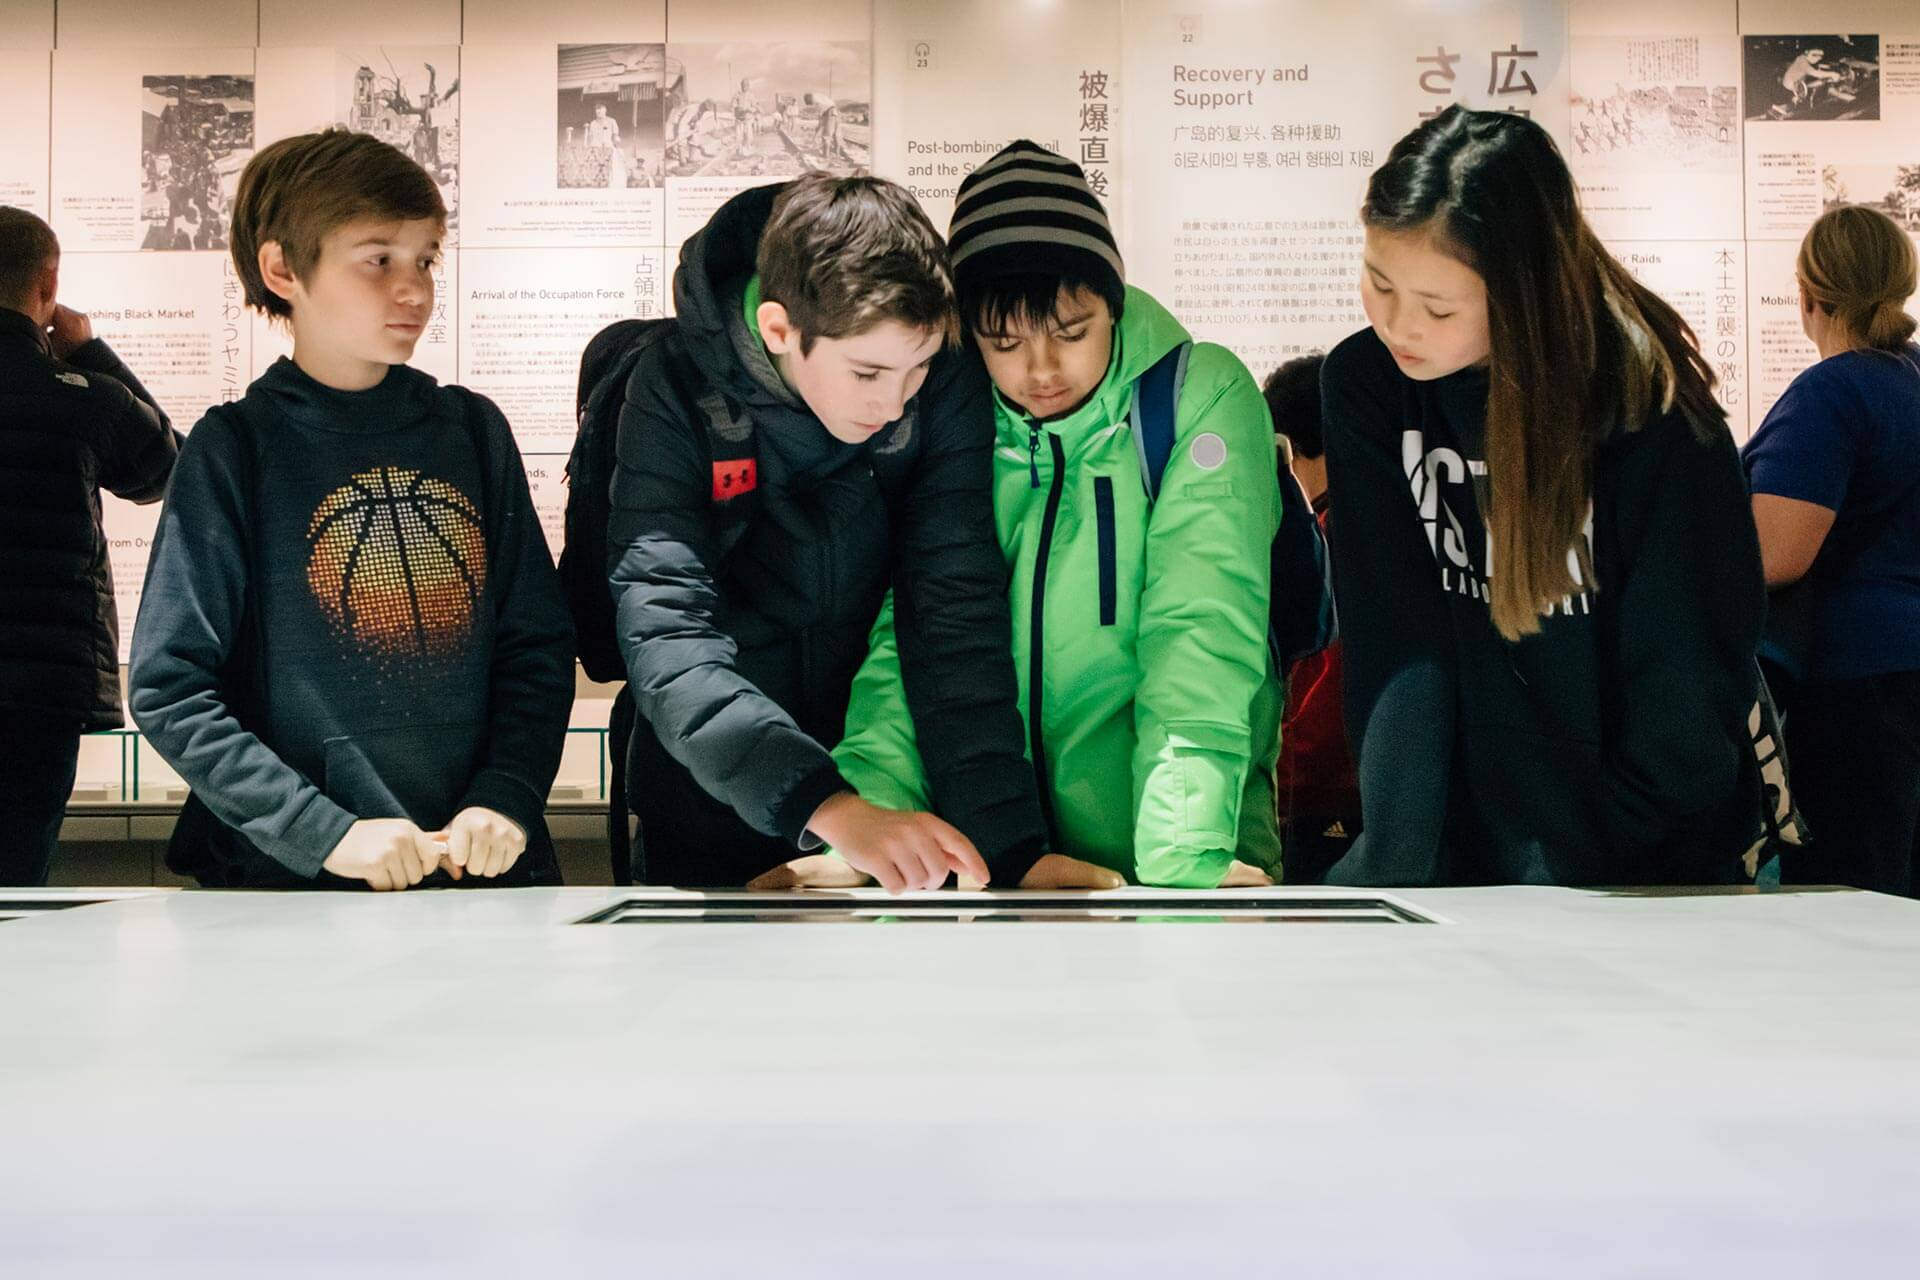 Four Middle Schoolers Use an Interactive Surface at the Hiroshima Peace Museum